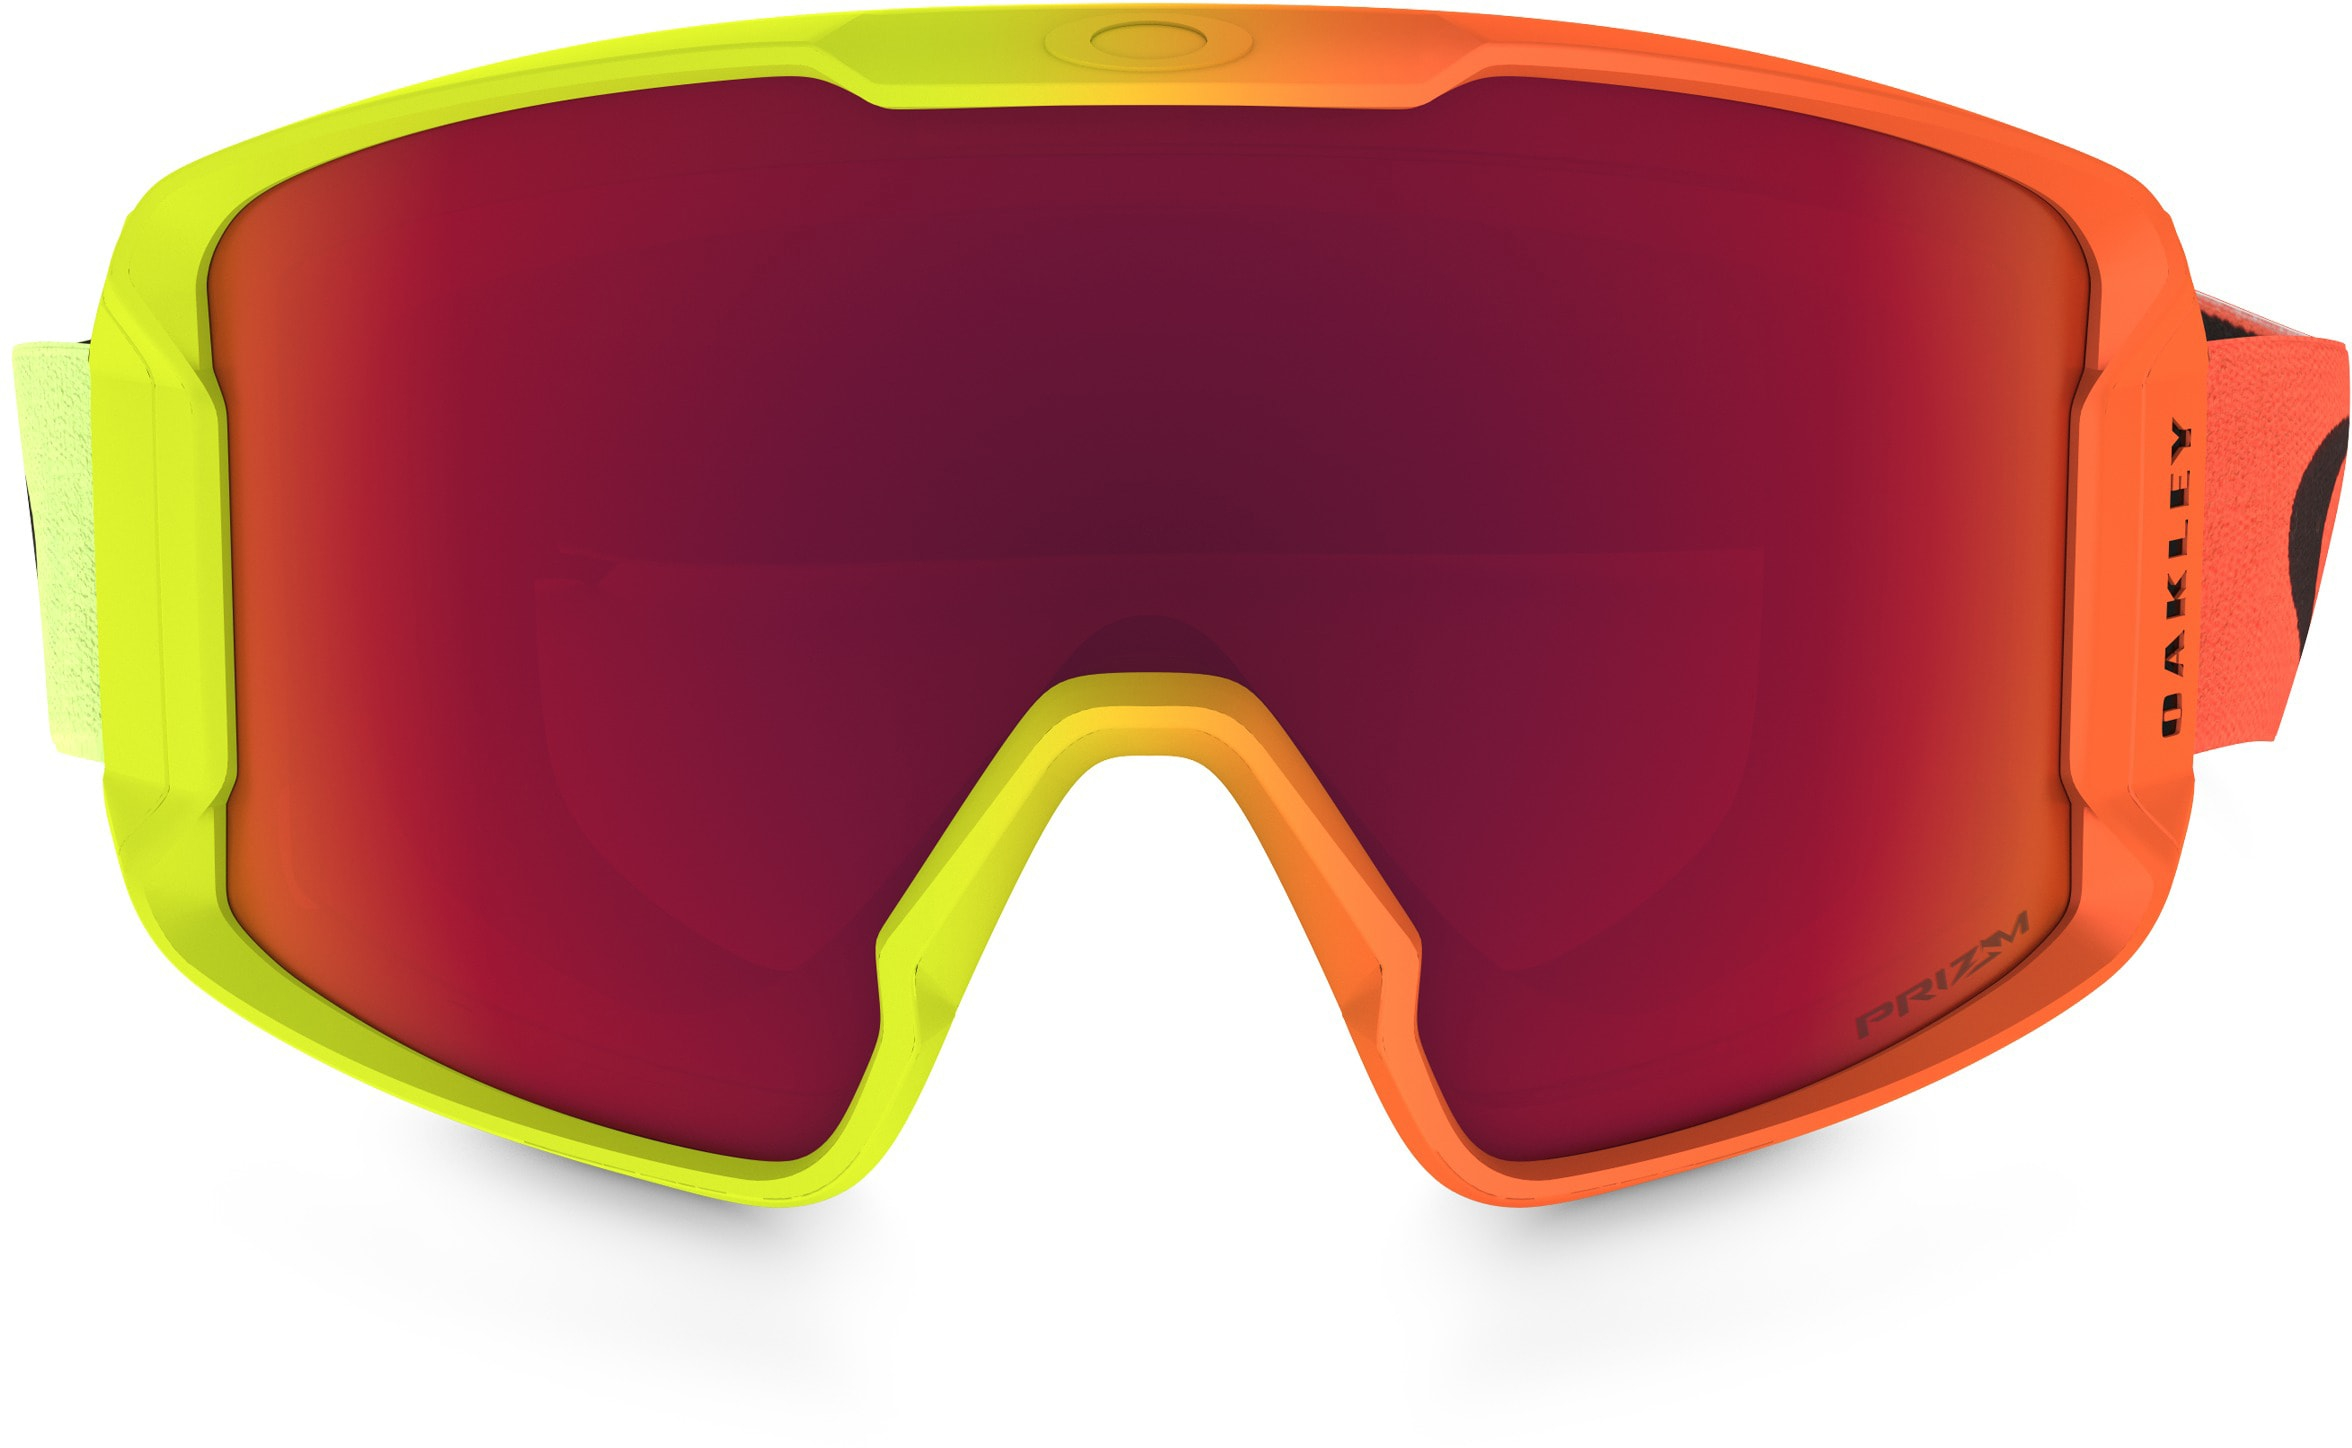 628281829c Oakley Line Miner XM Harmony Fade Col Goggles - thumbnail 2